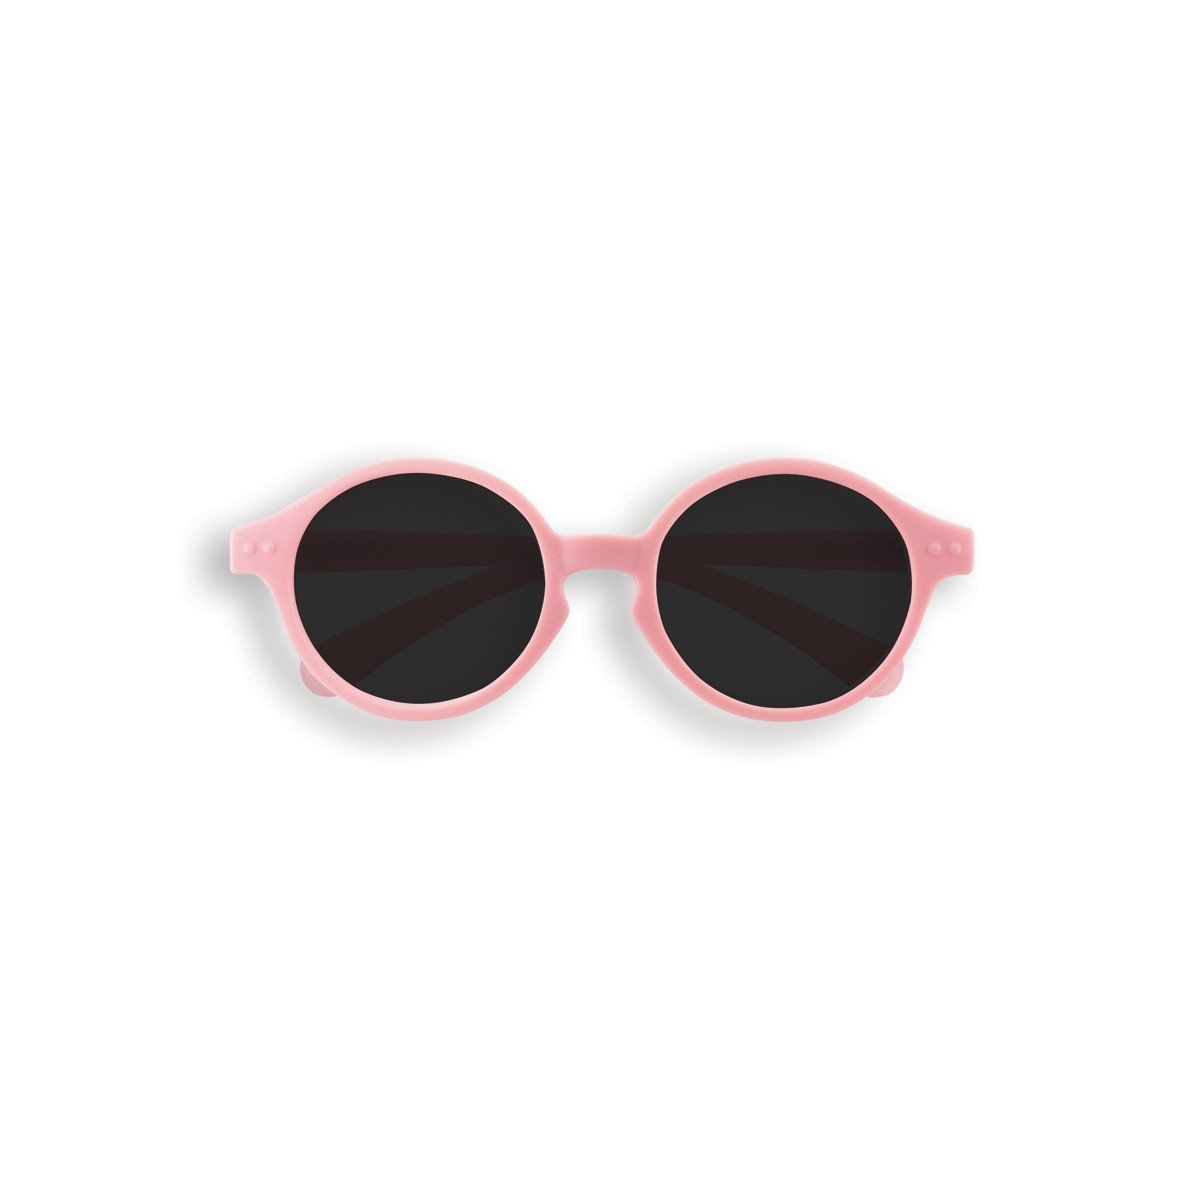 IZIPIZI Round Infant Sunglasses 0-12mo